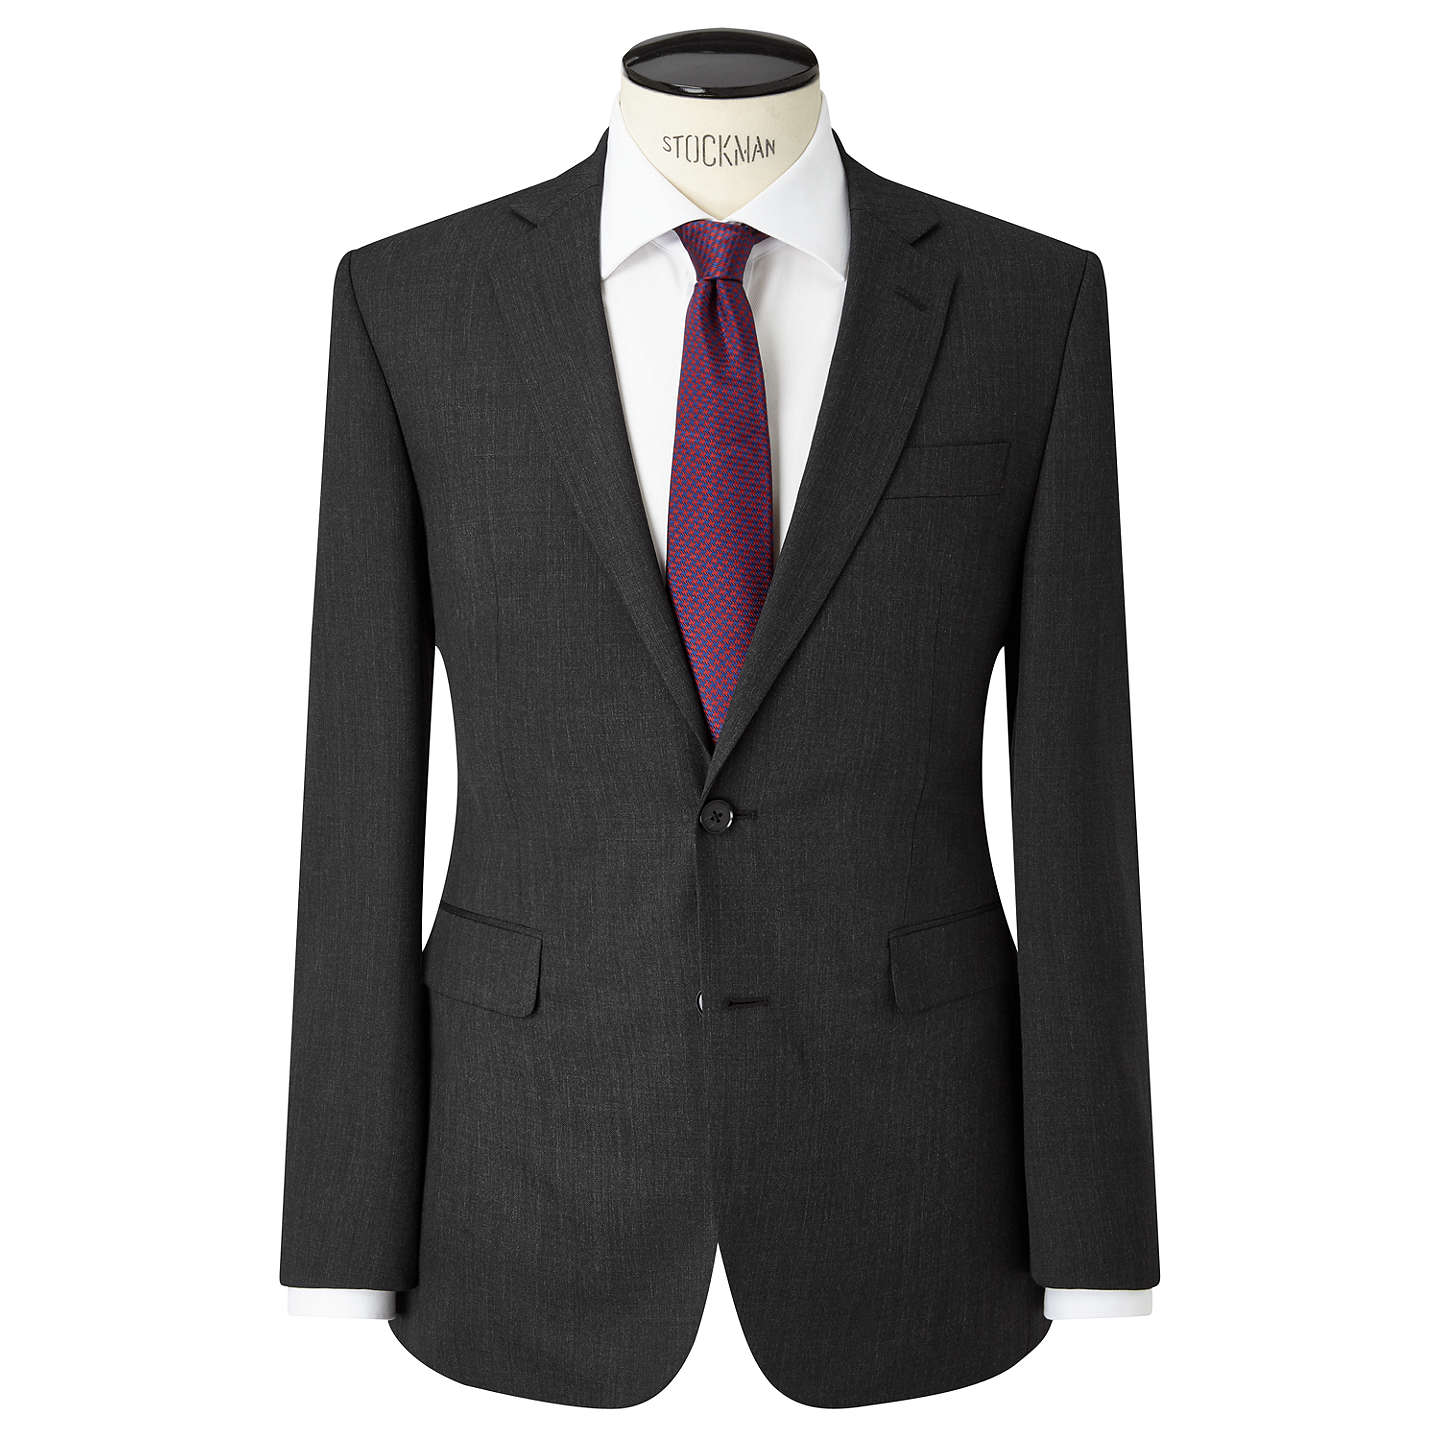 BuyJohn Lewis Washable Tailored Suit Jacket, Charcoal, 40R Online at johnlewis.com